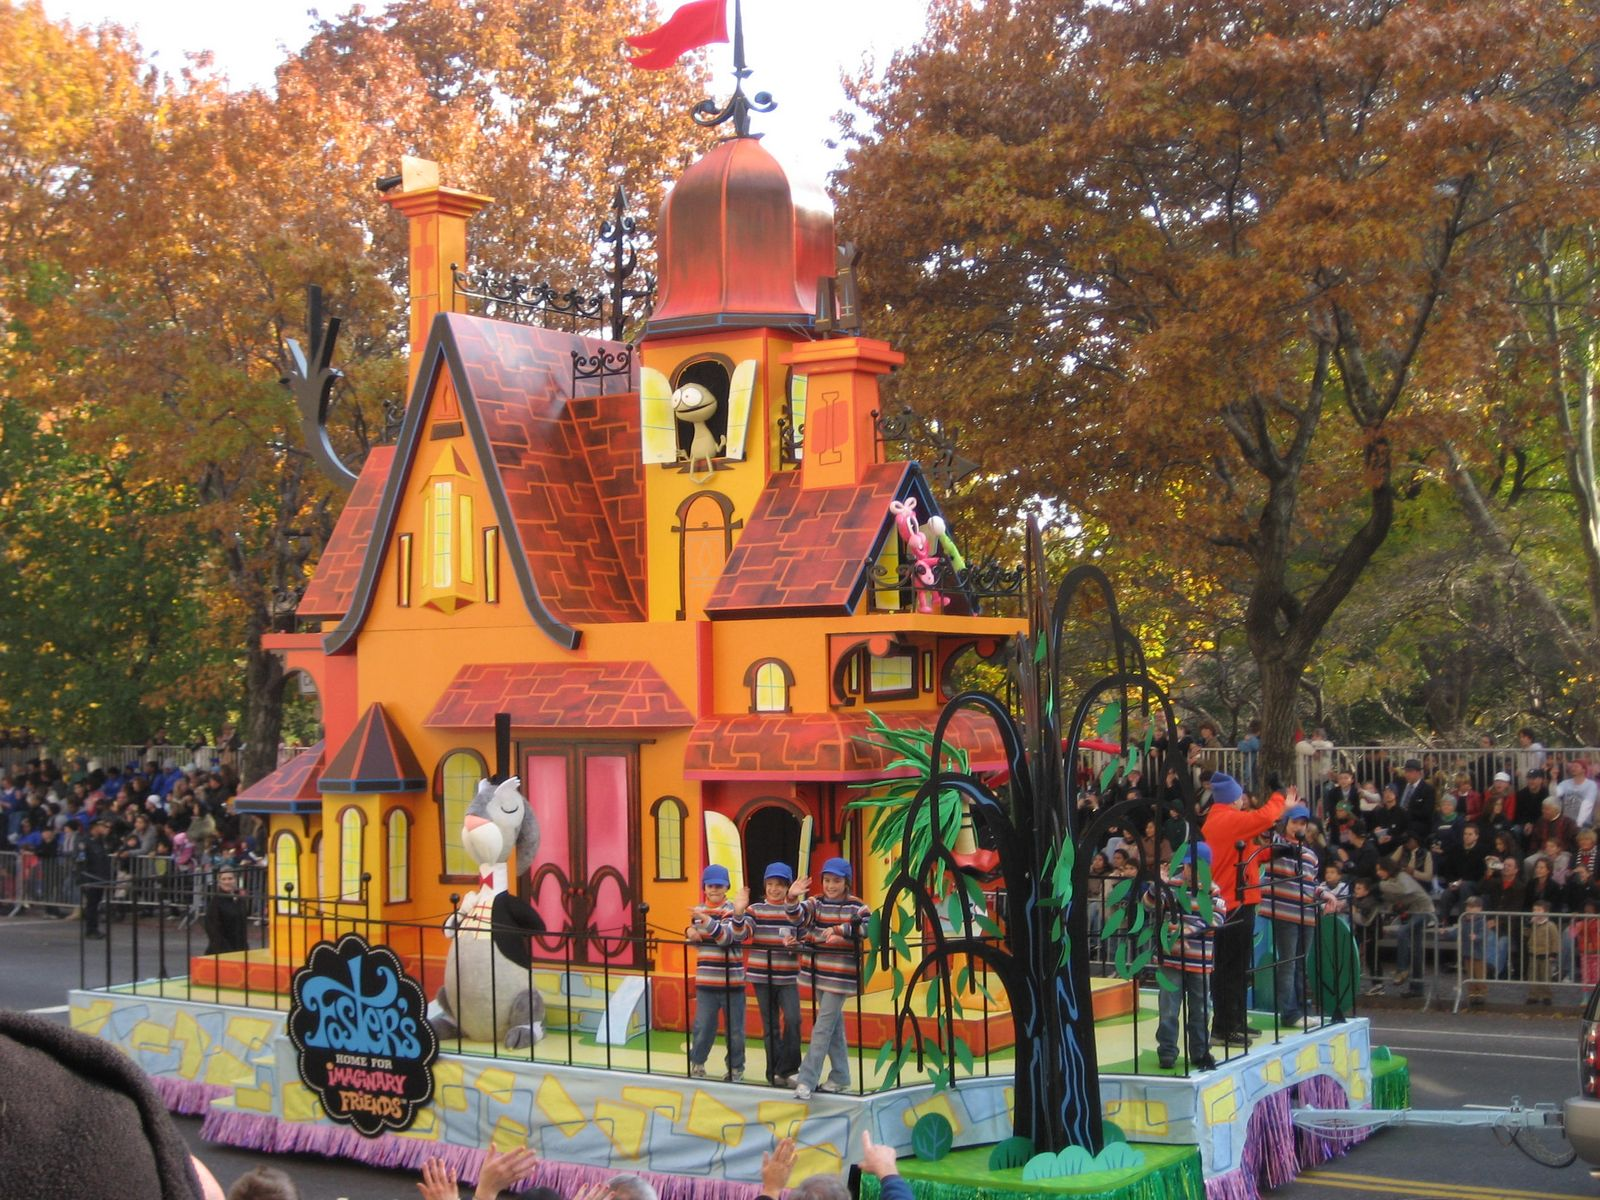 Imagination companions a foster s home for imaginary friends wiki - Macy S Thanksgiving Day Parade Float Imagination